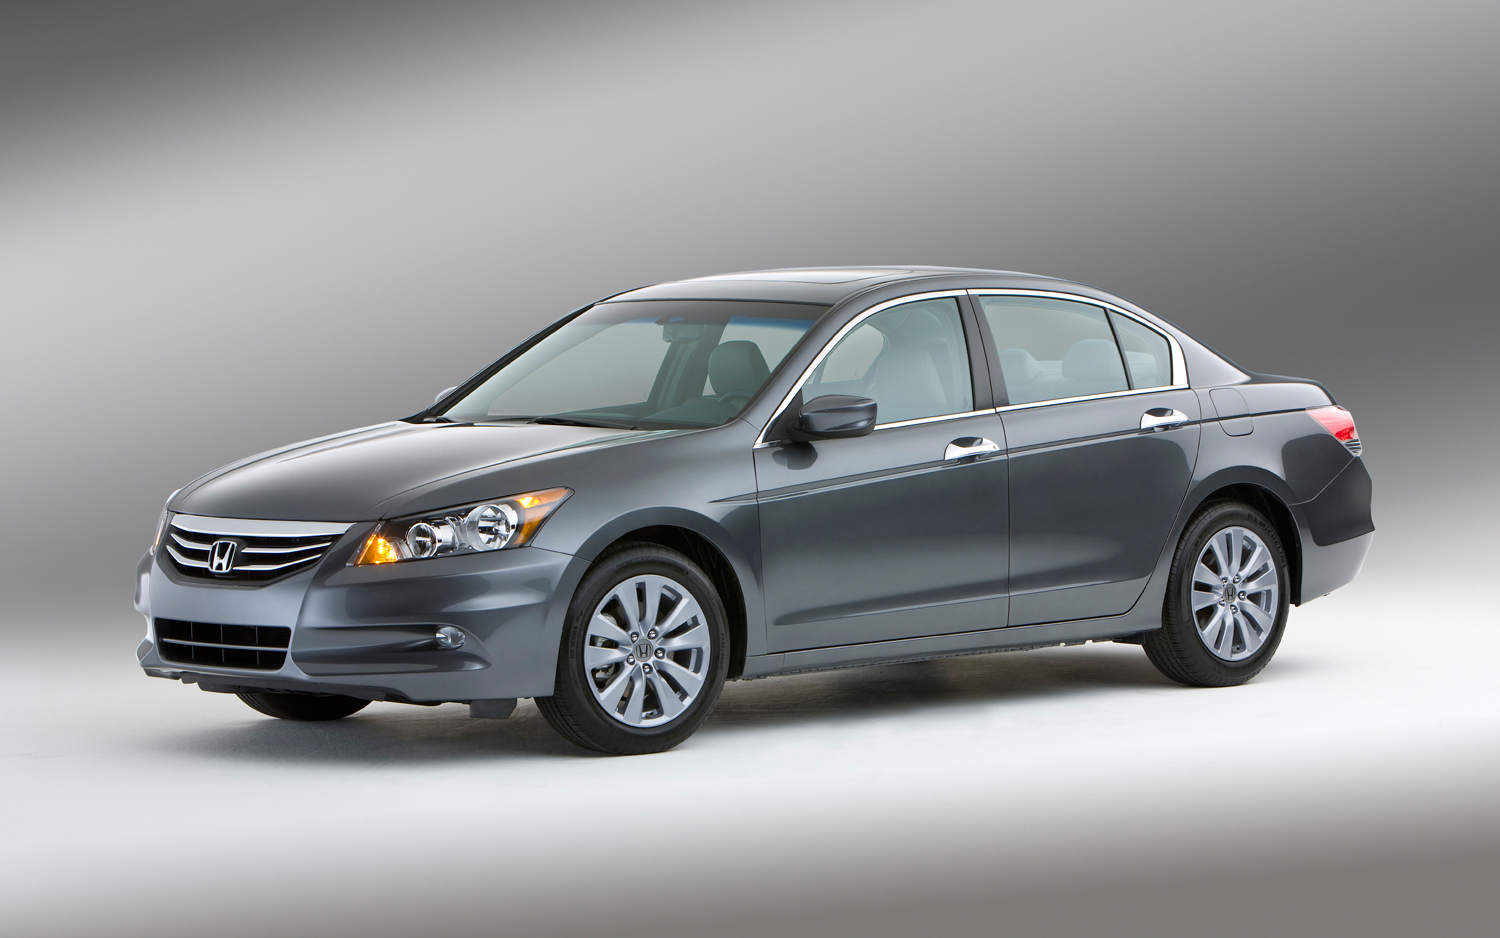 2012 Honda Accord #17